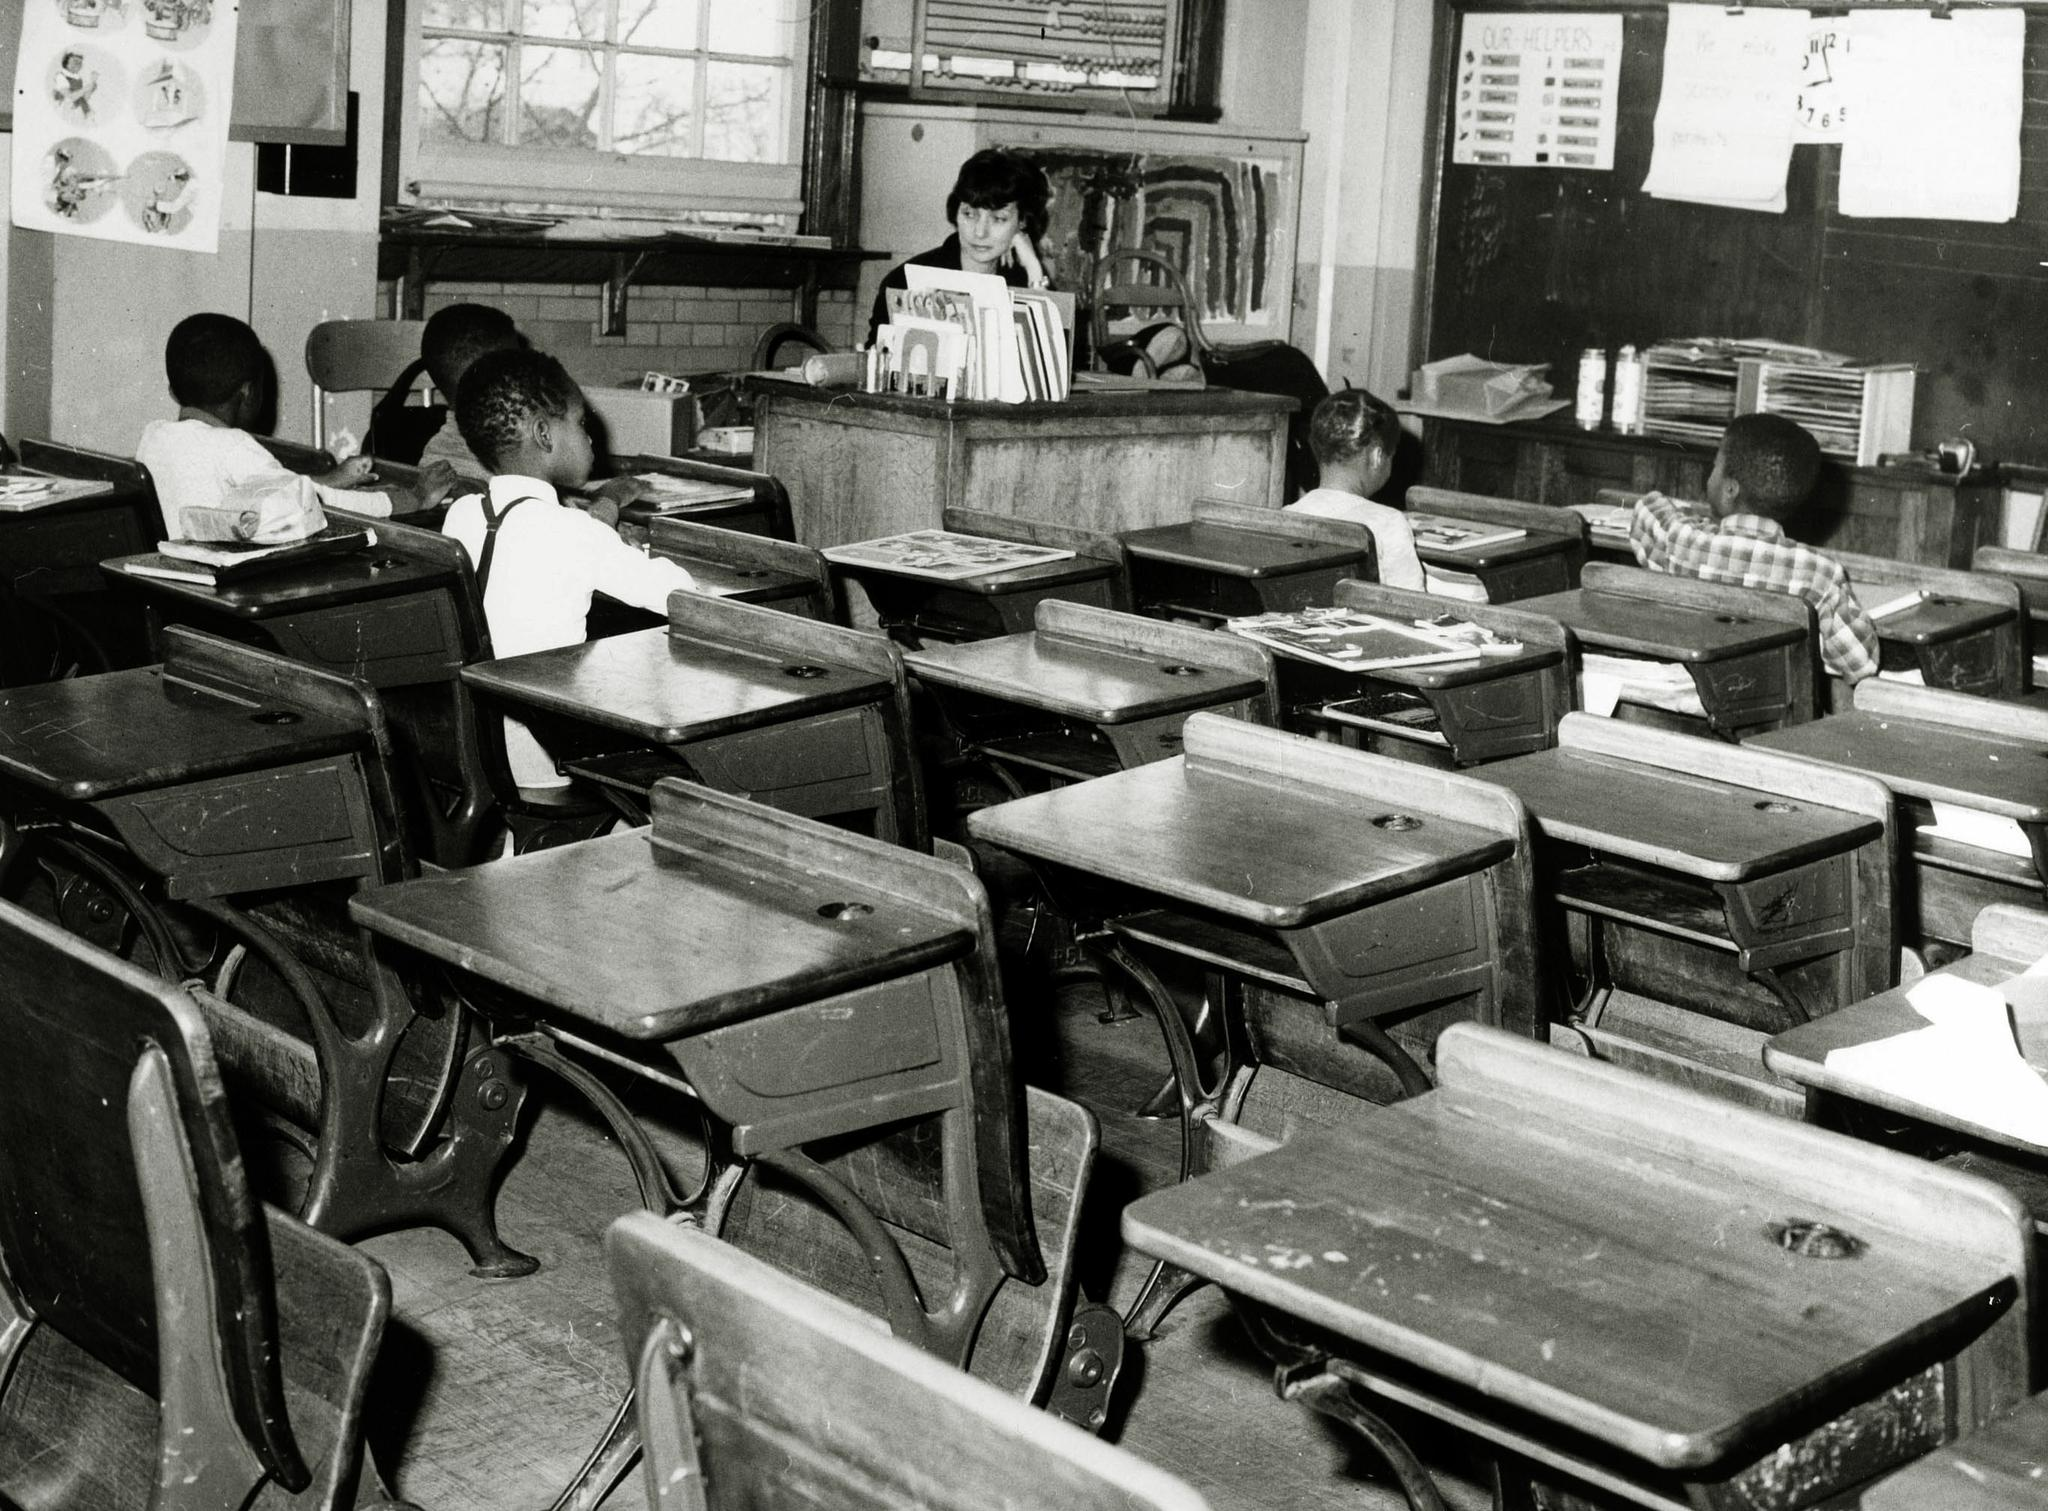 Integration of schools has been a battle for almost 60 years. White students in Queens, New York boycotted their school after it was forced to participate in an integration plan in 1964.